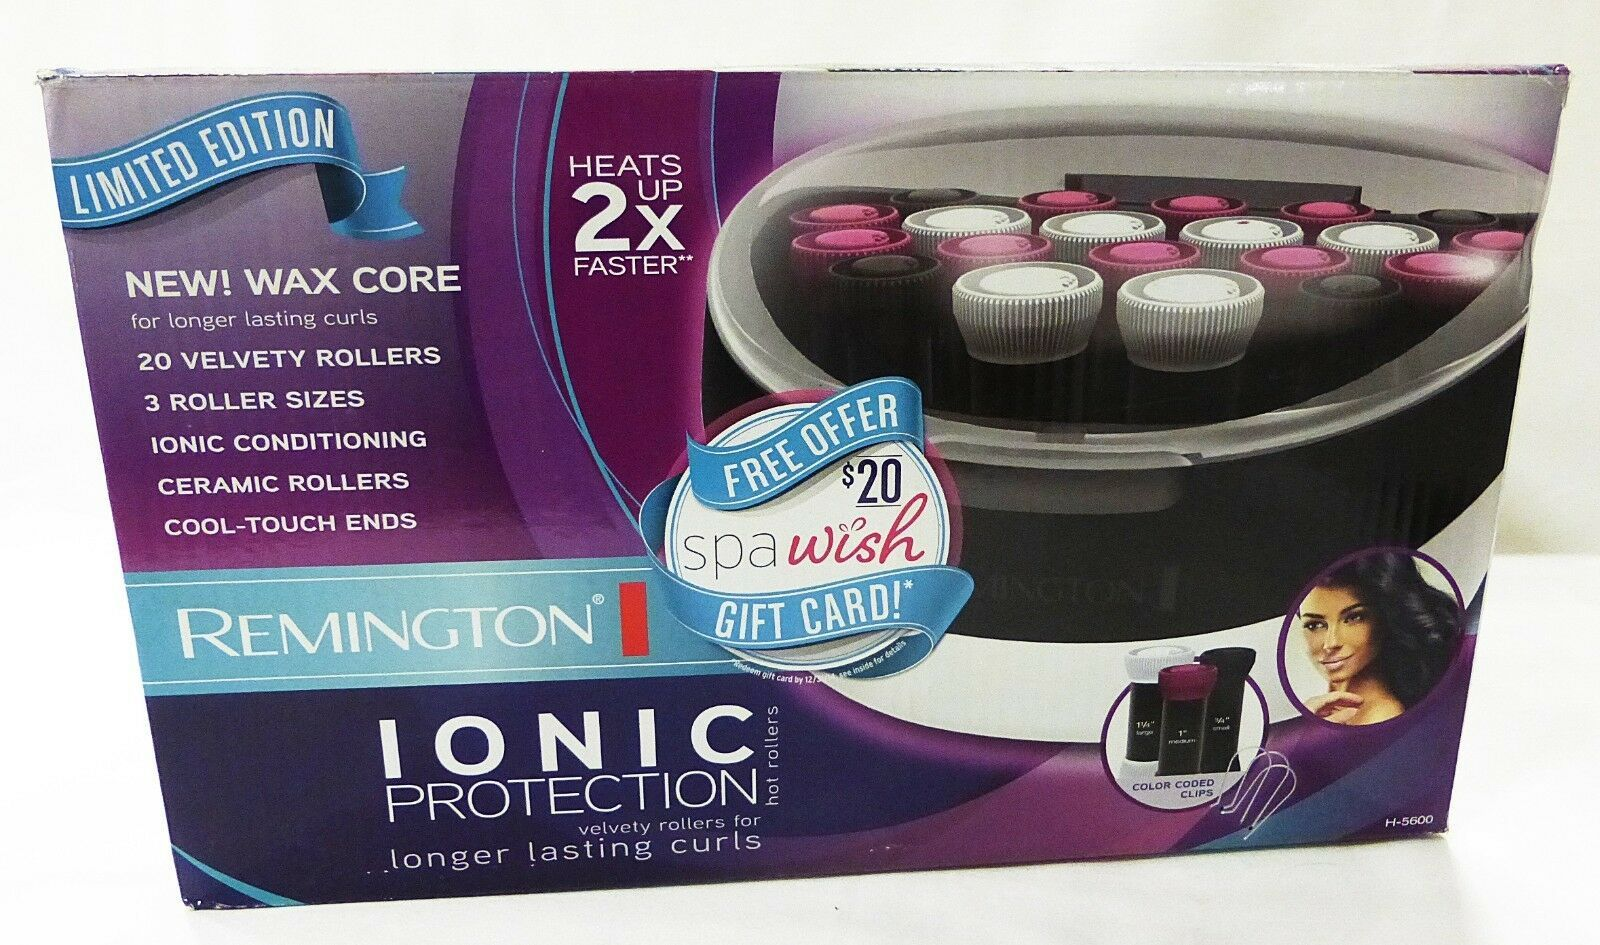 Primary image for Remington hair care ionic protection limited edition ceramic rollers and clips